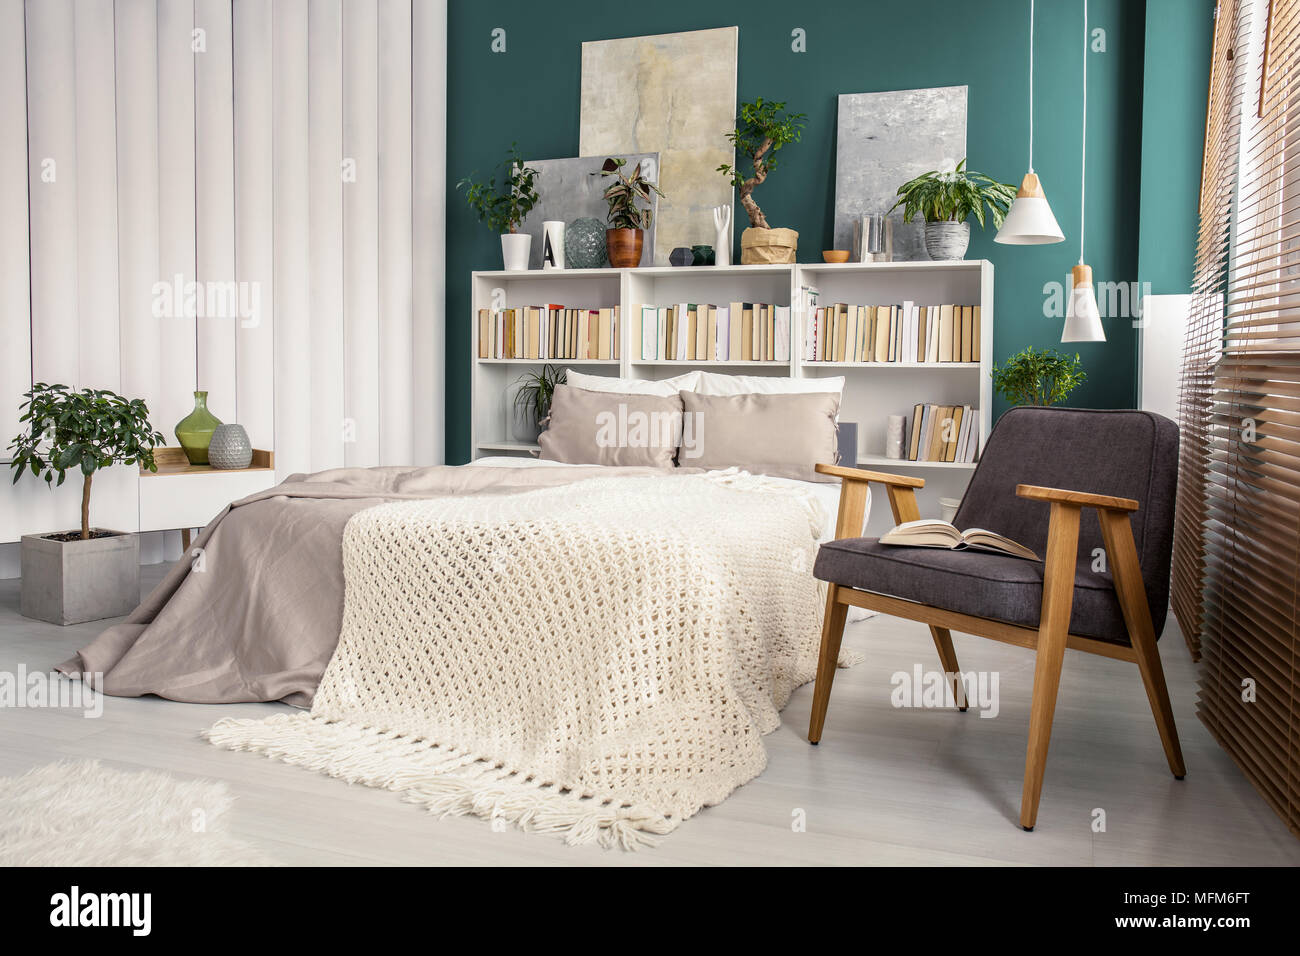 White and green bedroom interior with a knit blanket on ...